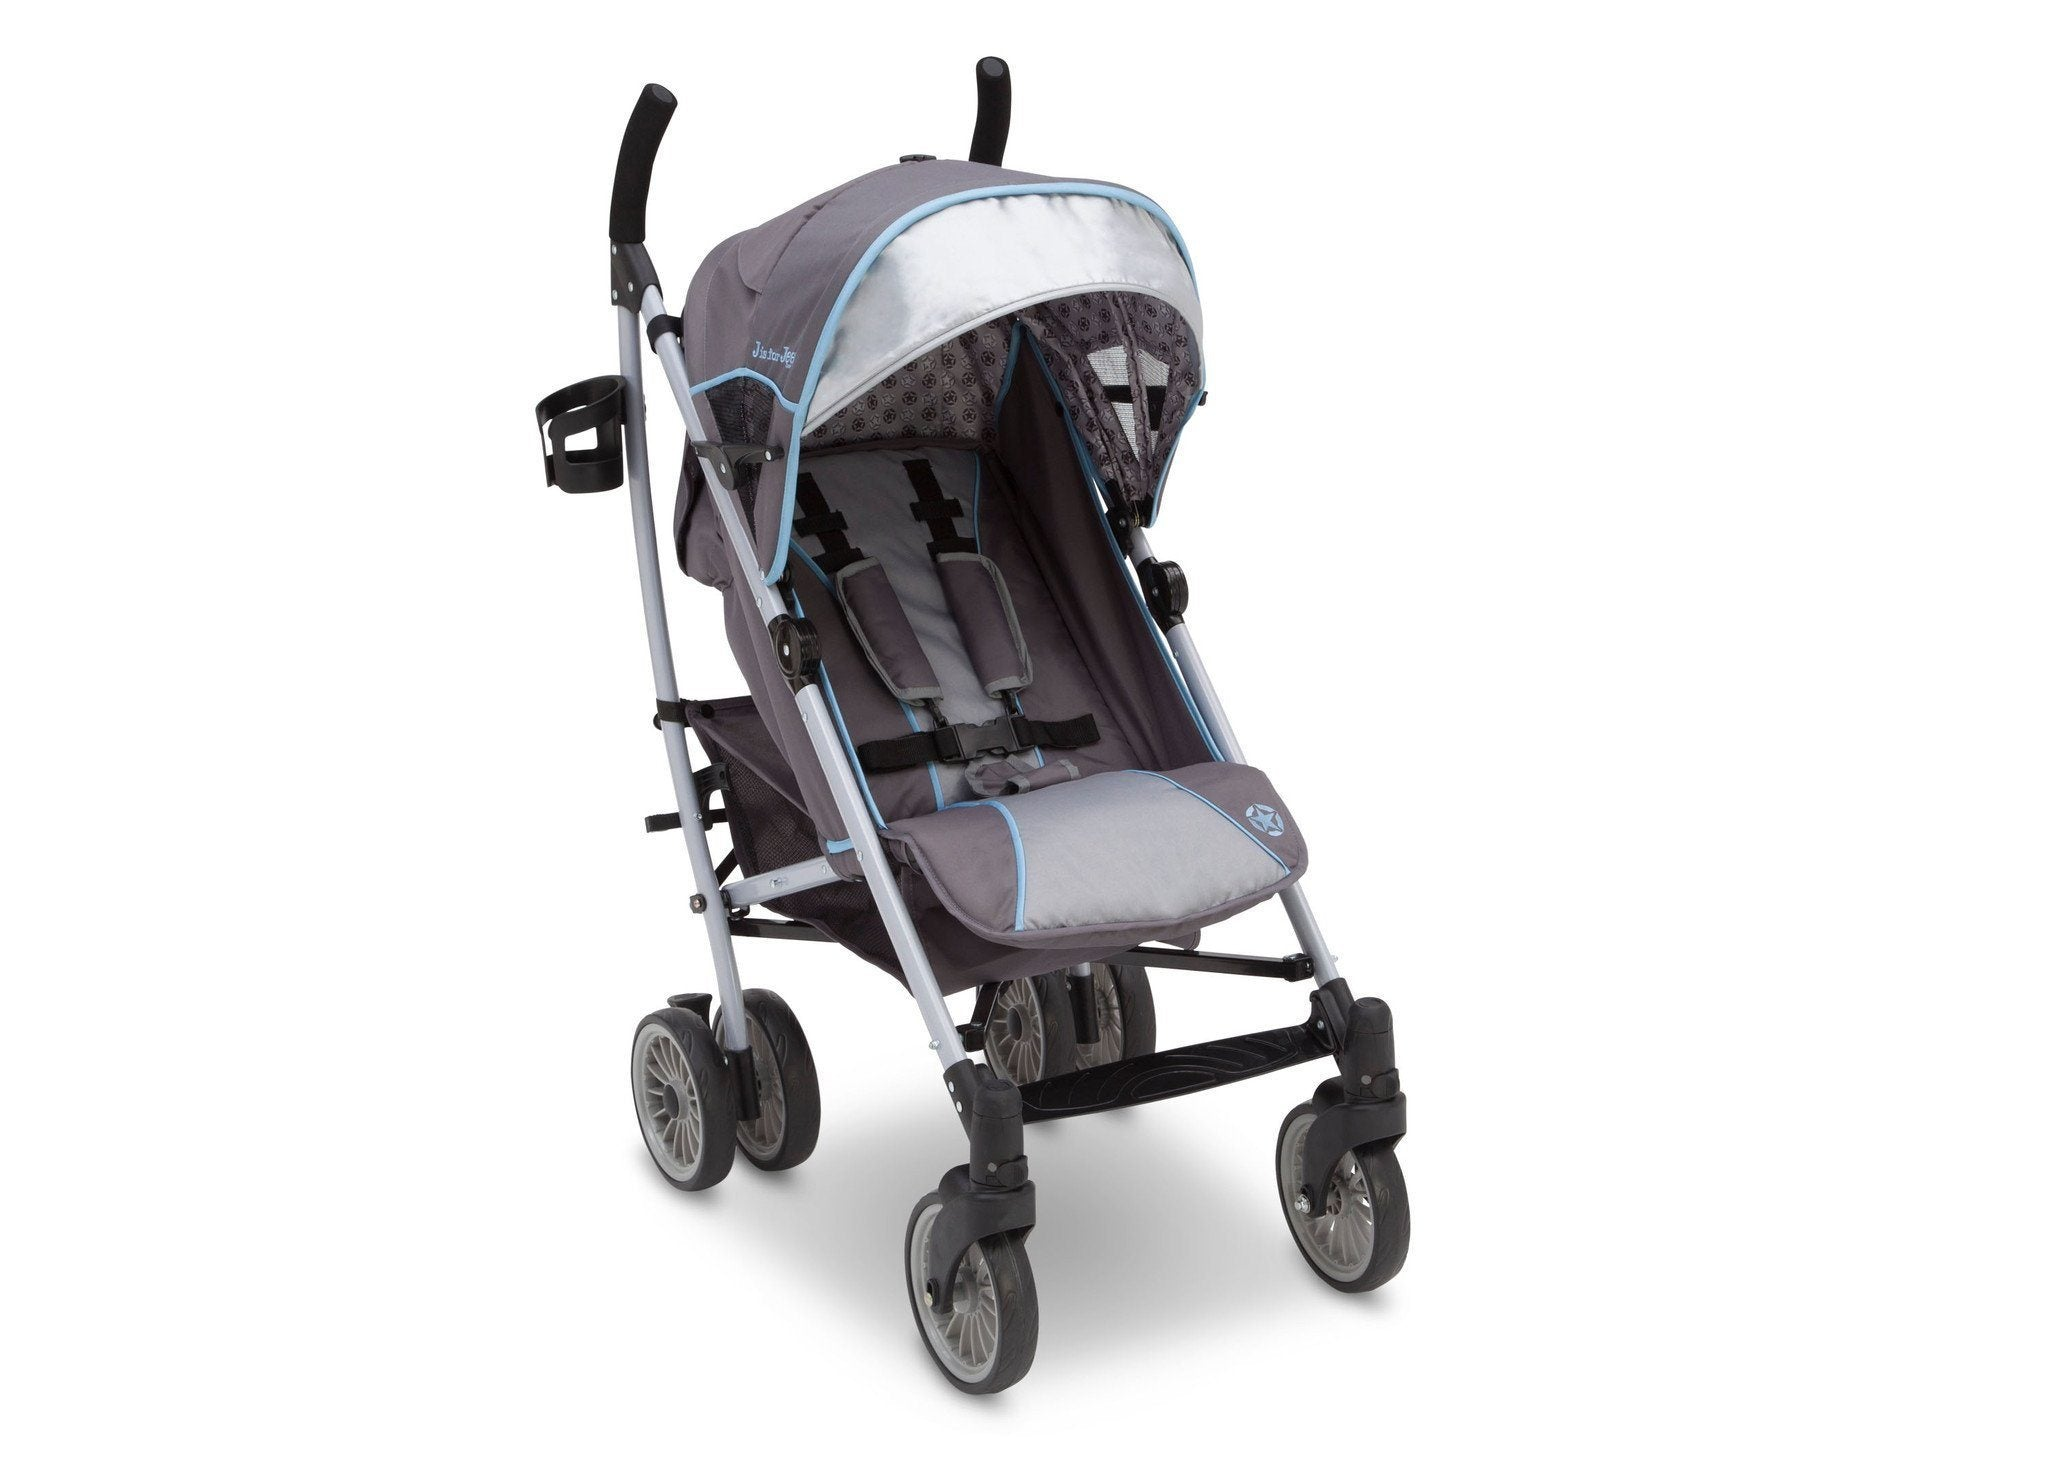 Delta Children Star Light (095) J is for Jeep Brand Atlas AL Sport Stroller Right Side View, with Canopy a1a